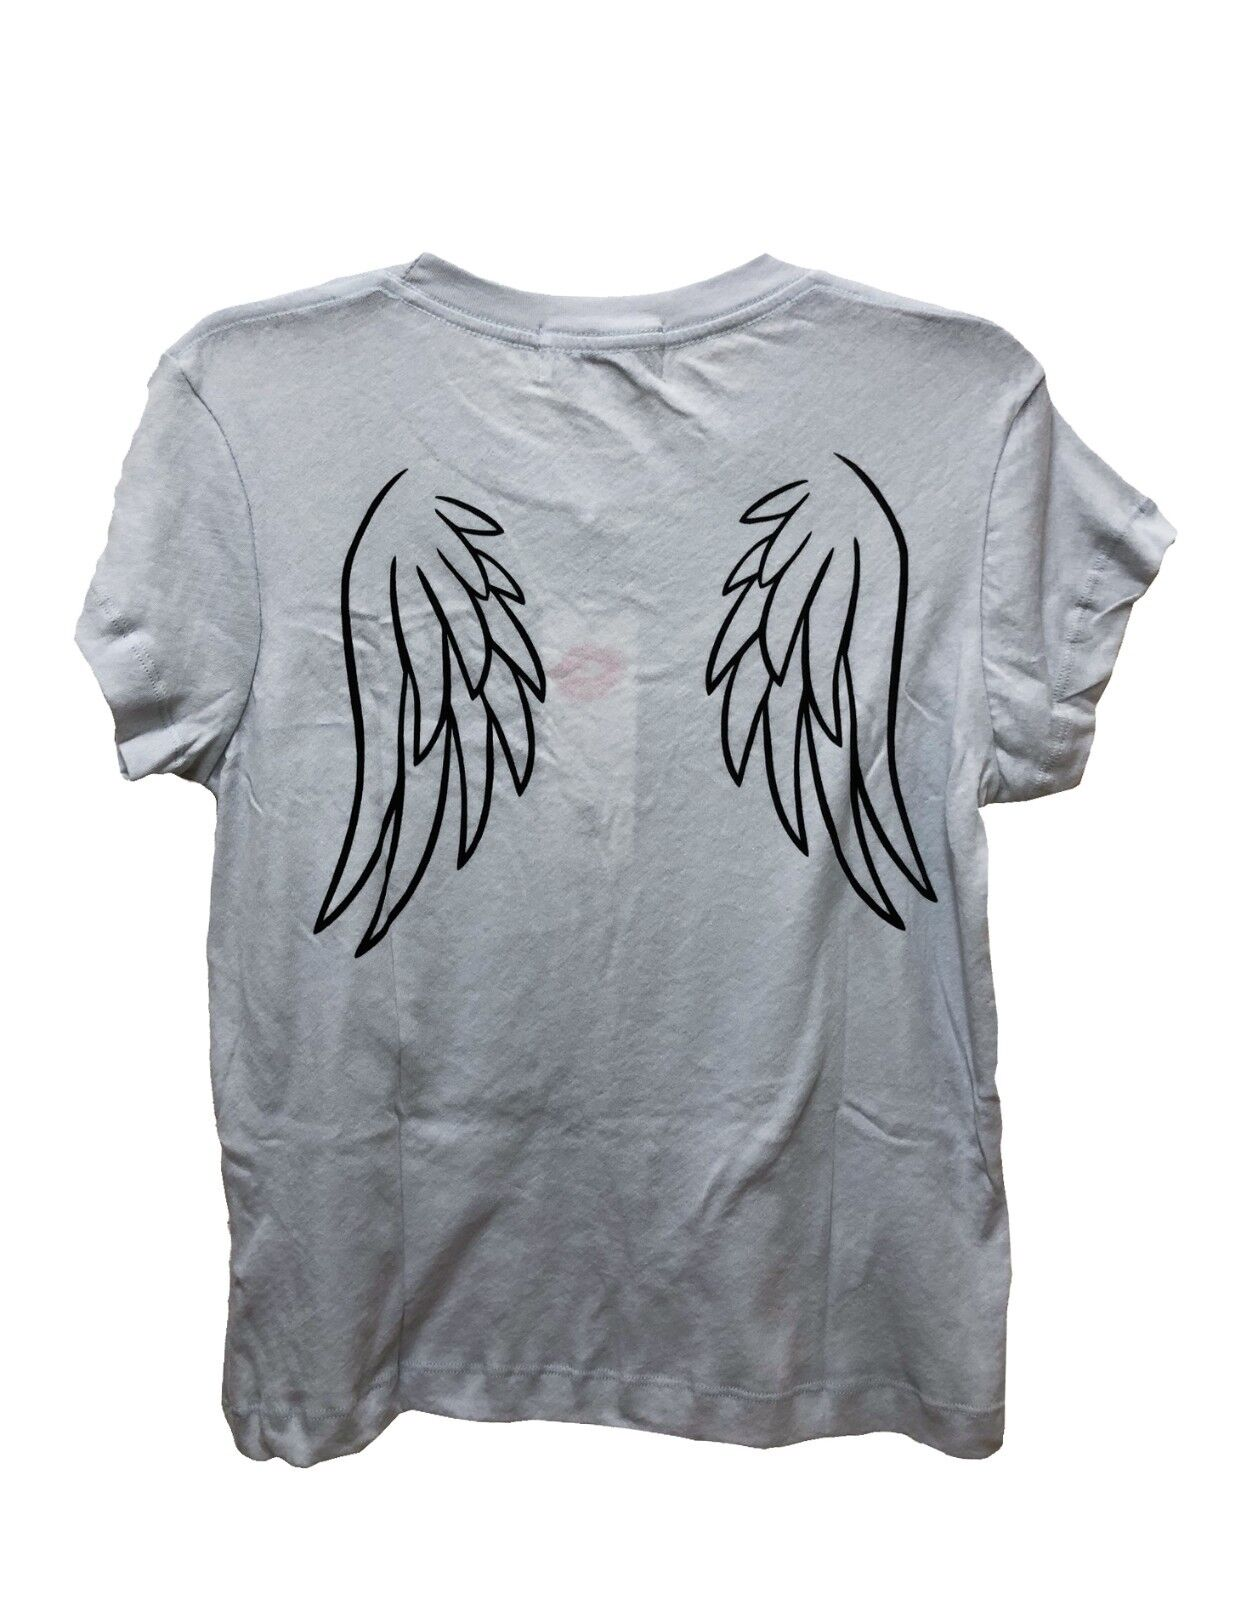 Wildfox Couture damen Angel Baby Wing Vintage Blau T-SHIRT Tee Top XS S M L